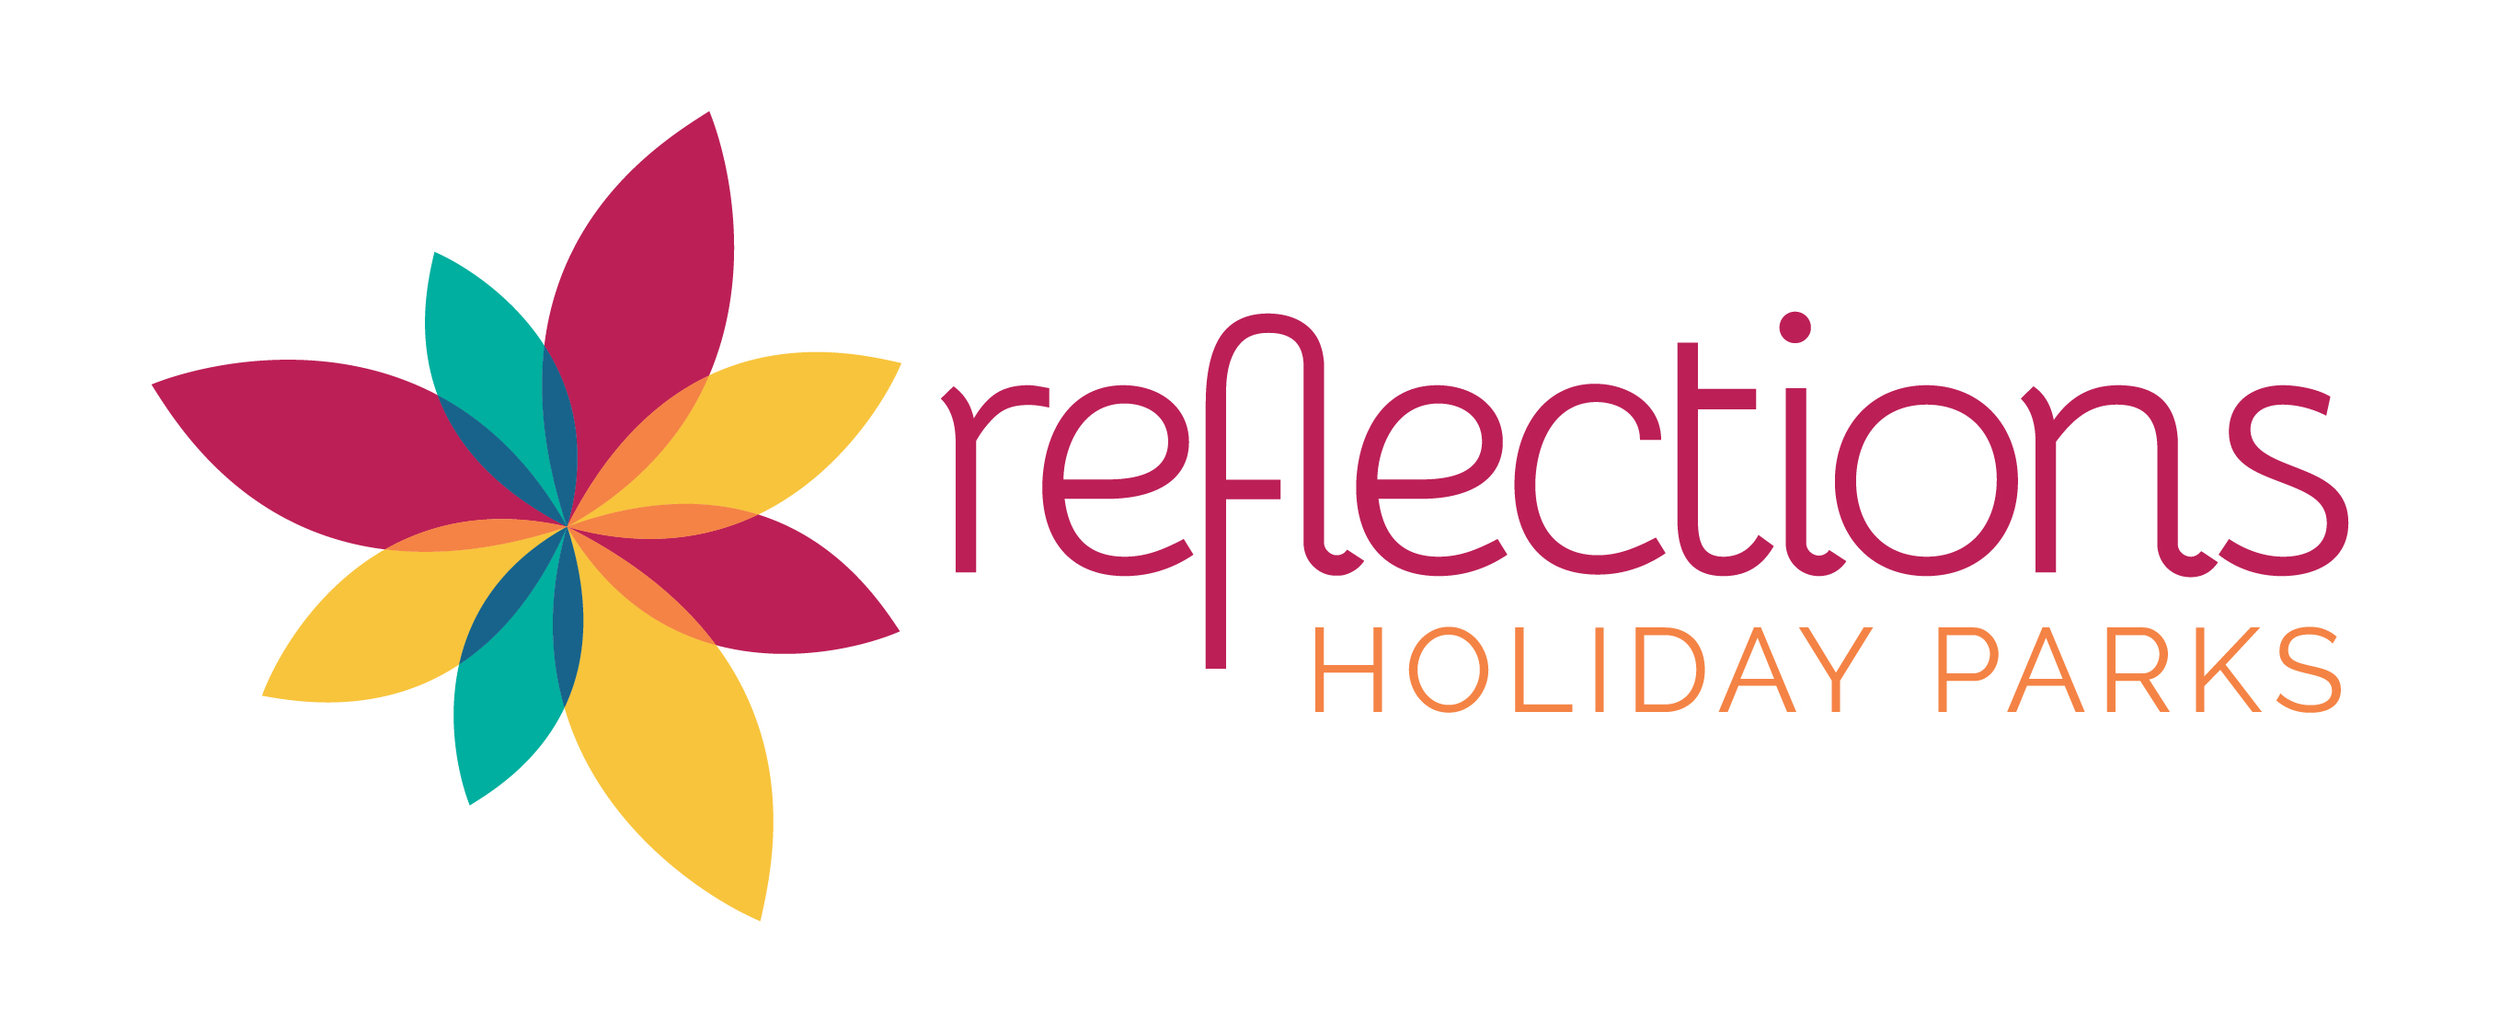 reflections_holidayparks_logo.jpg